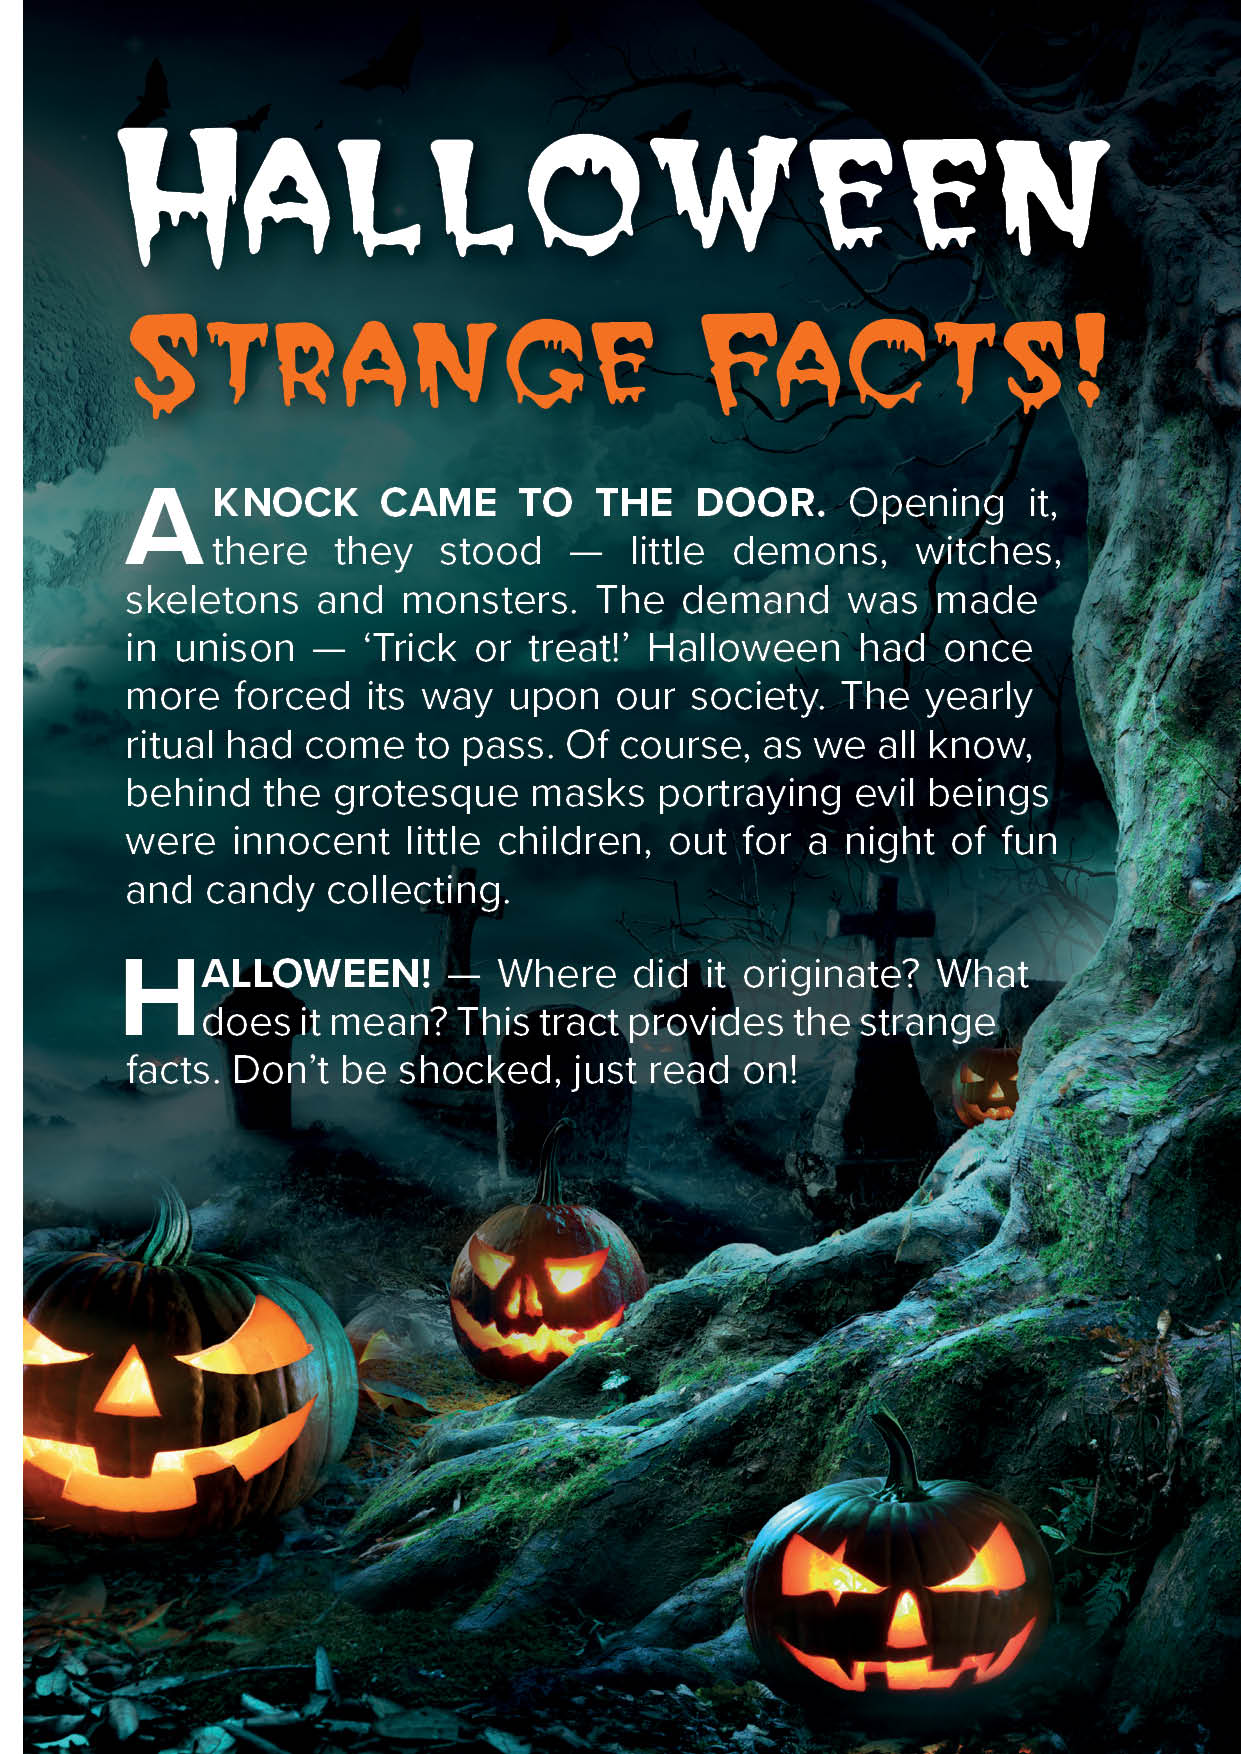 Halloween Strange Facts (25 Pack)